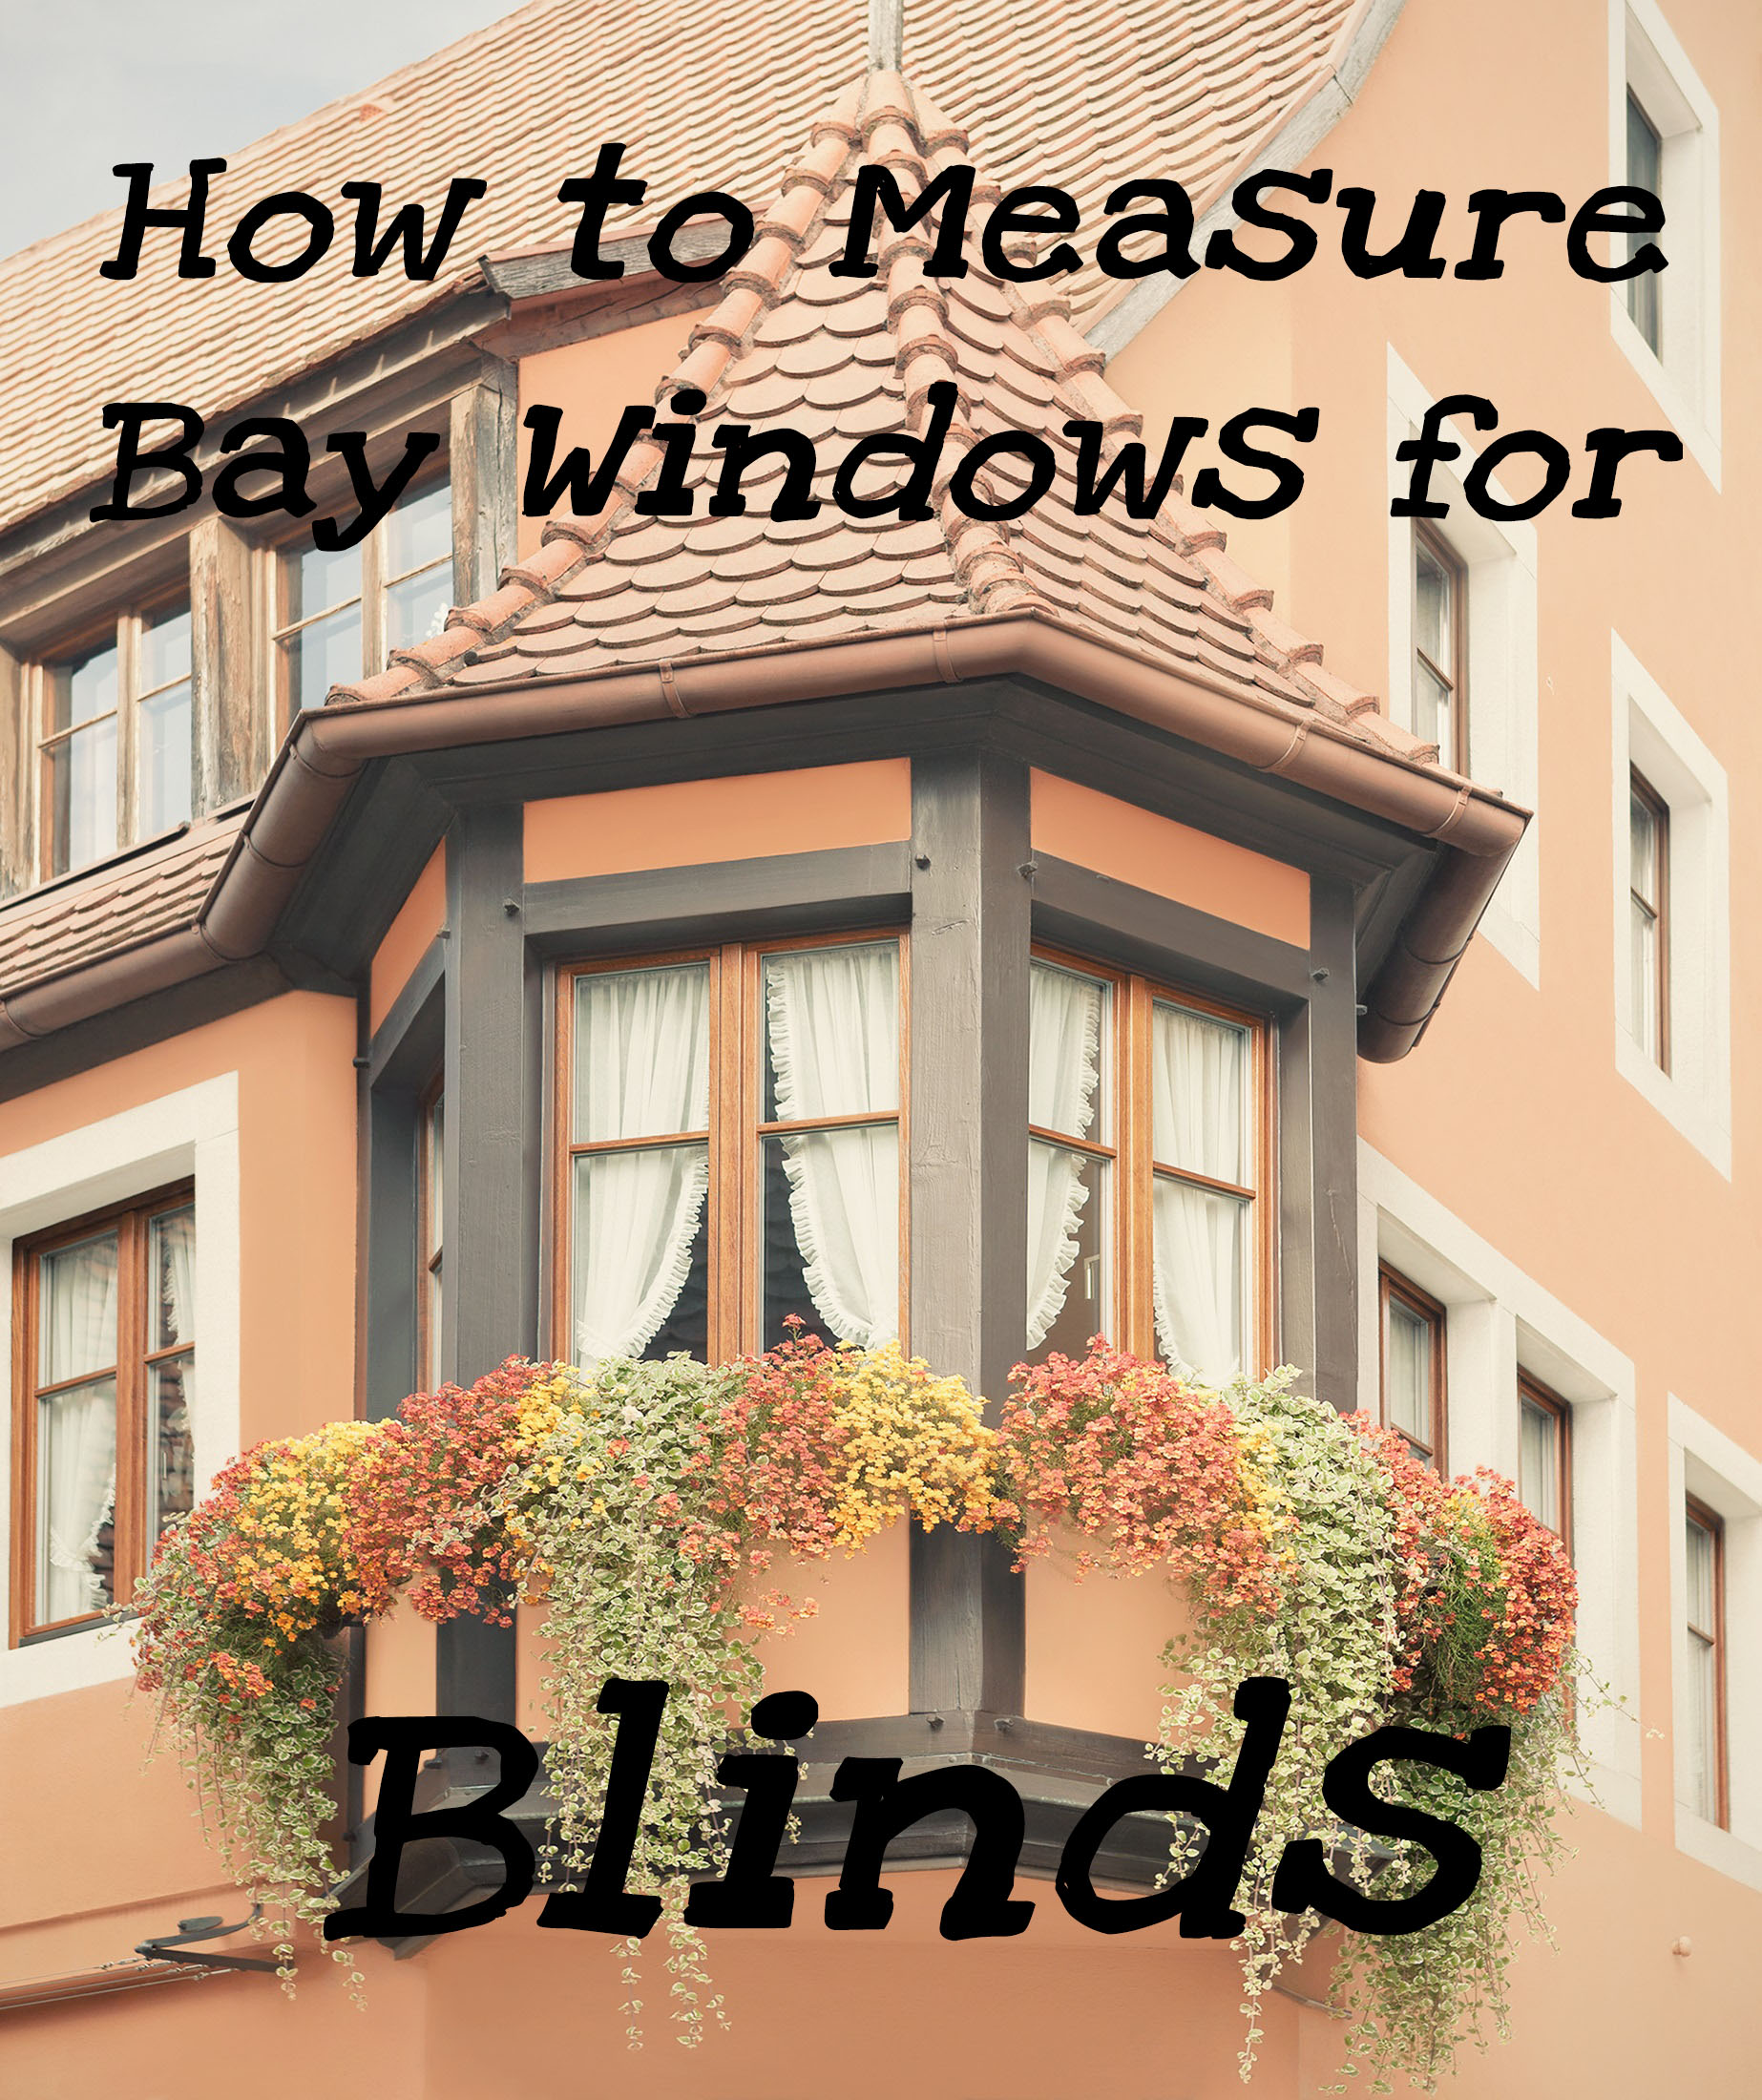 How to Measure Bay Windows for Blinds